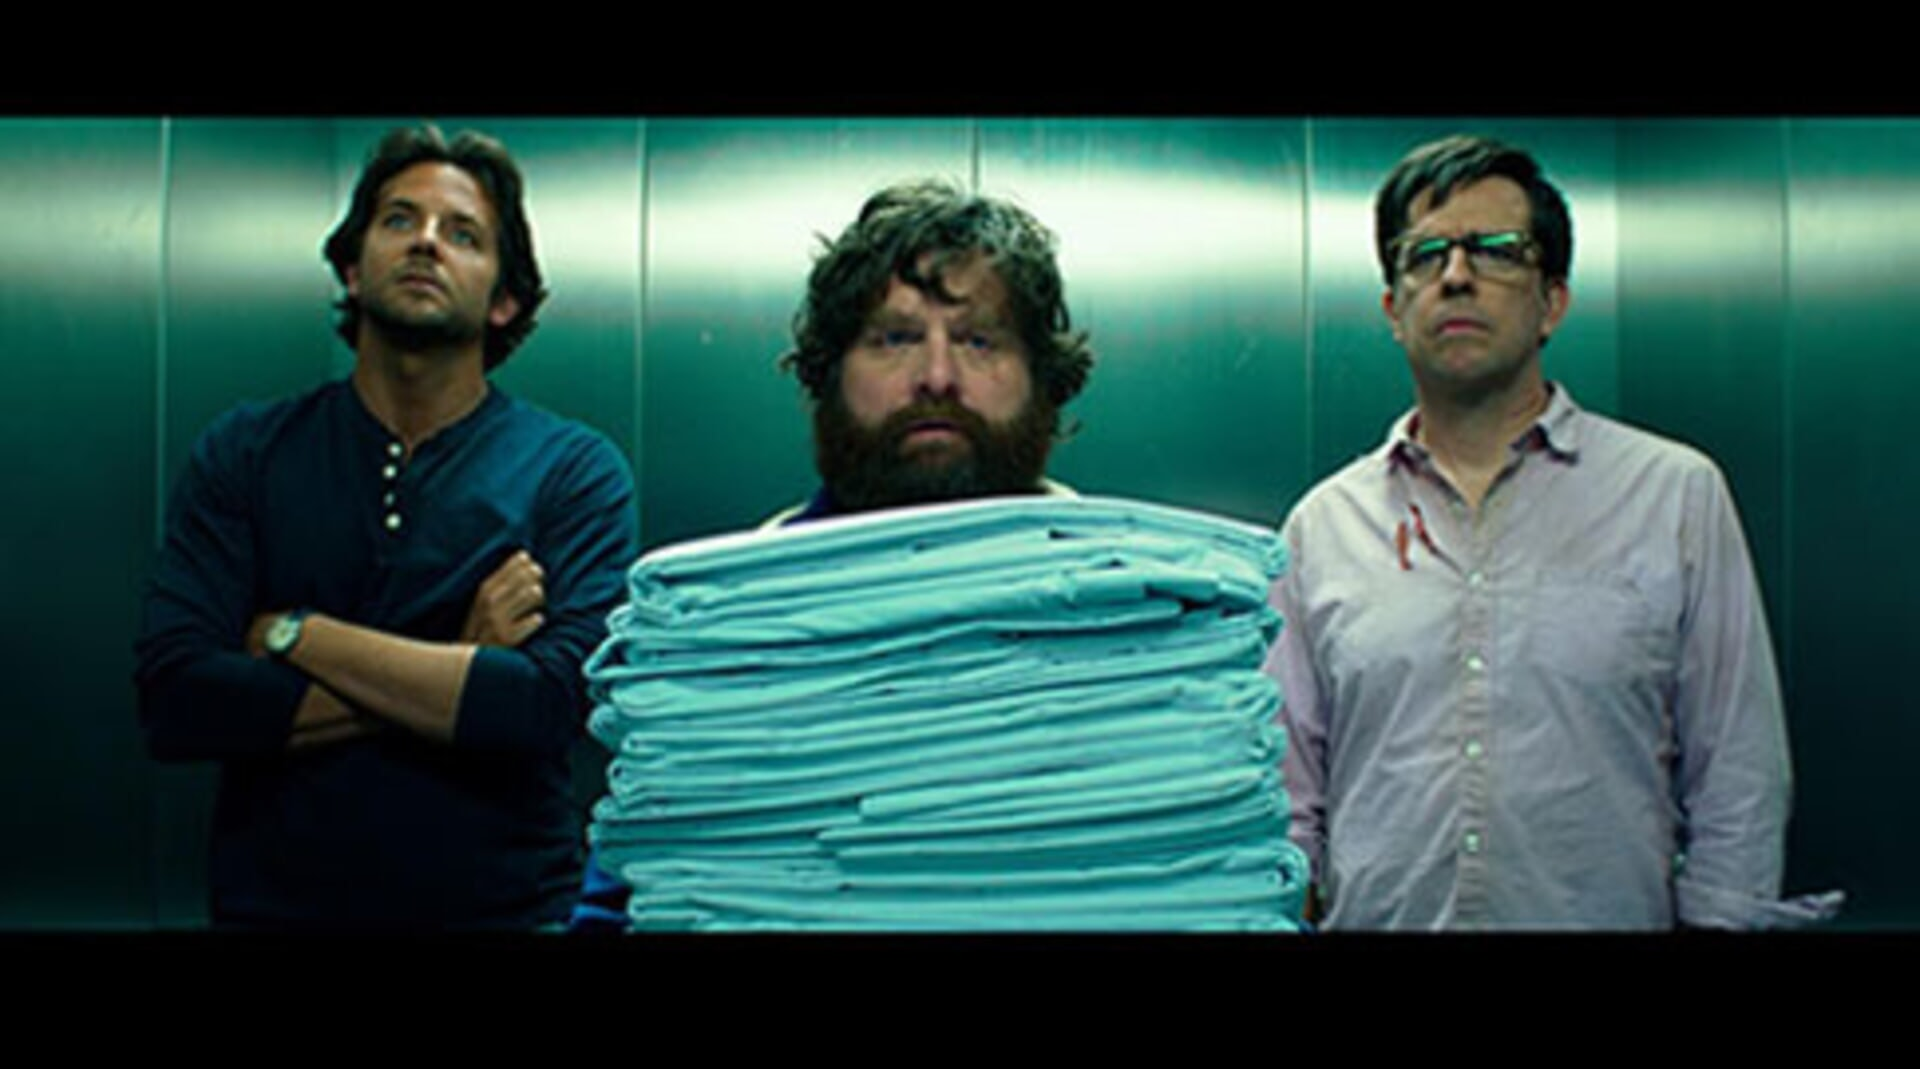 The Hangover Part III - Image 1